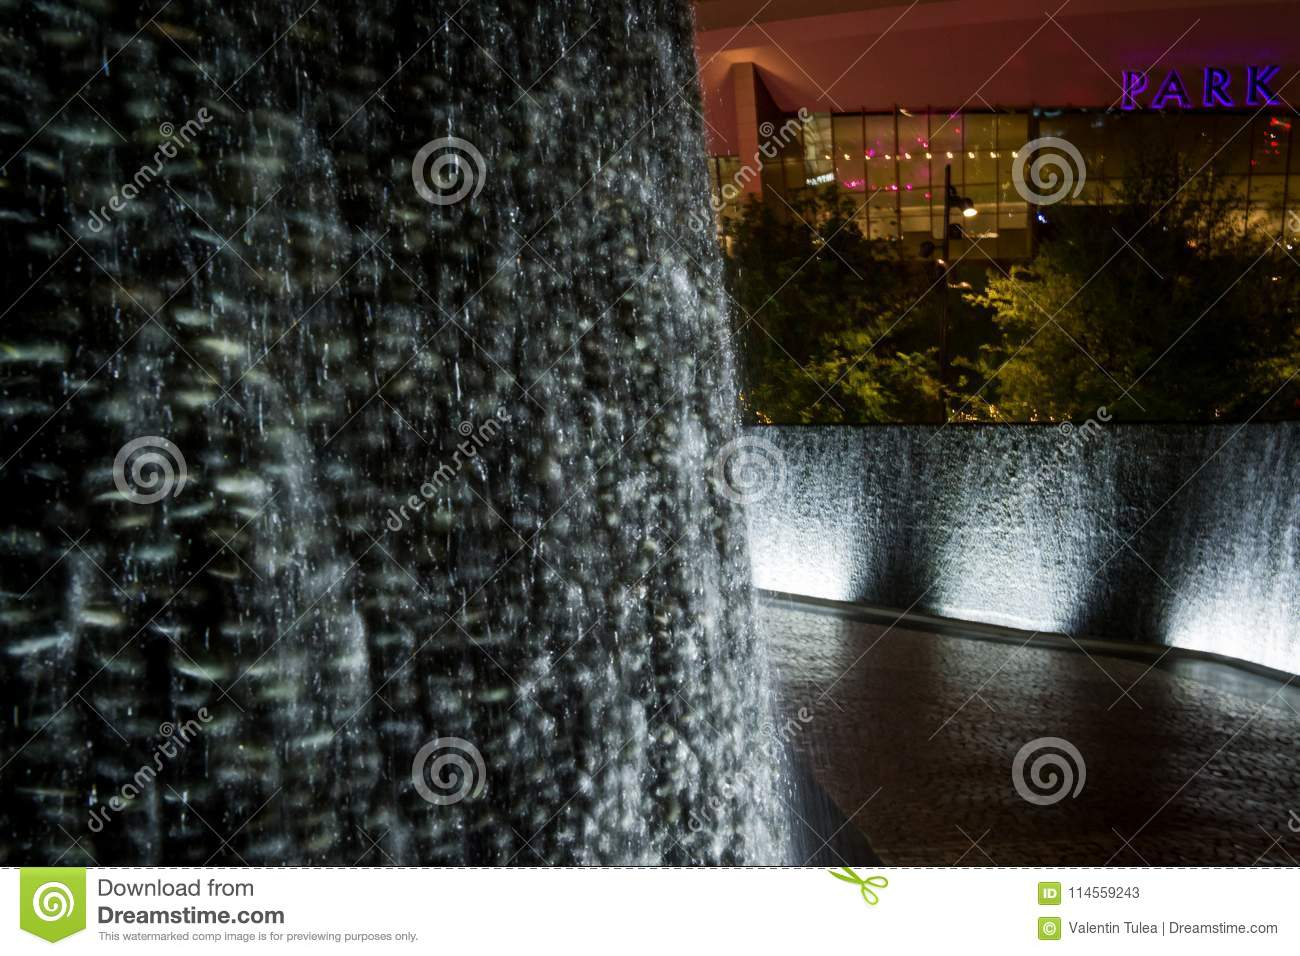 Night scene from The Park Water Wall from Las Vegas